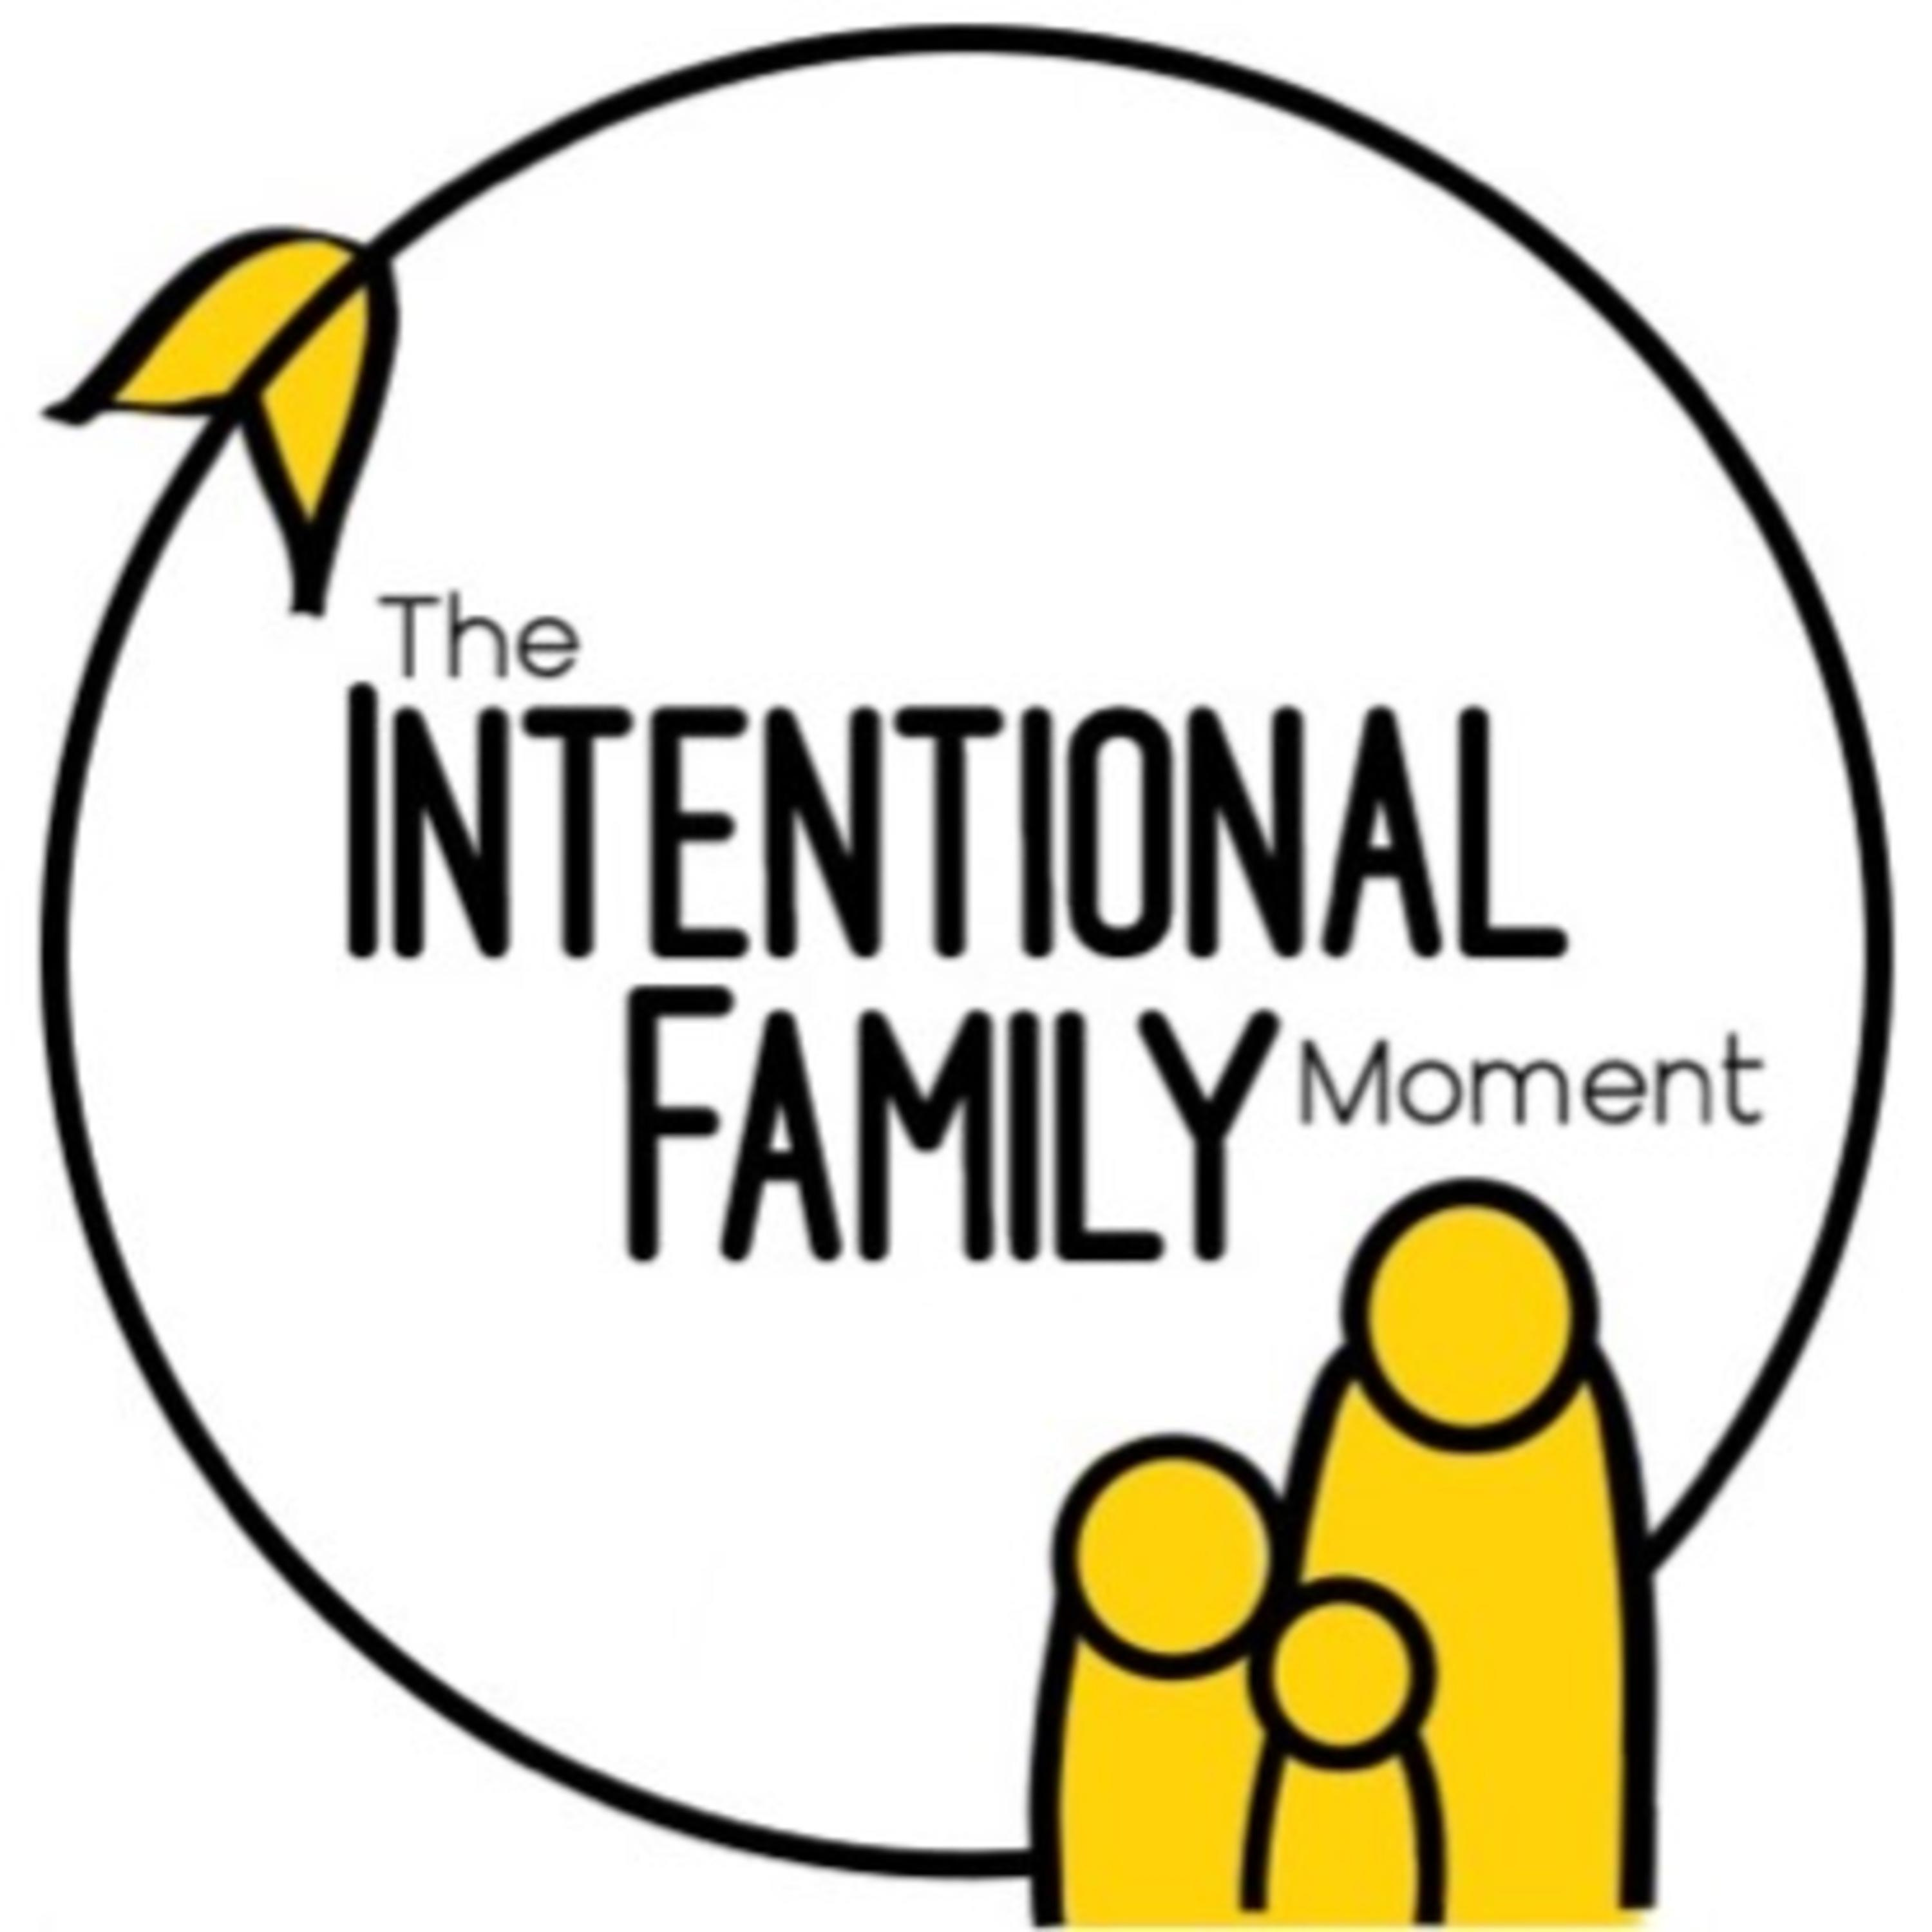 The Intentional Family Moment